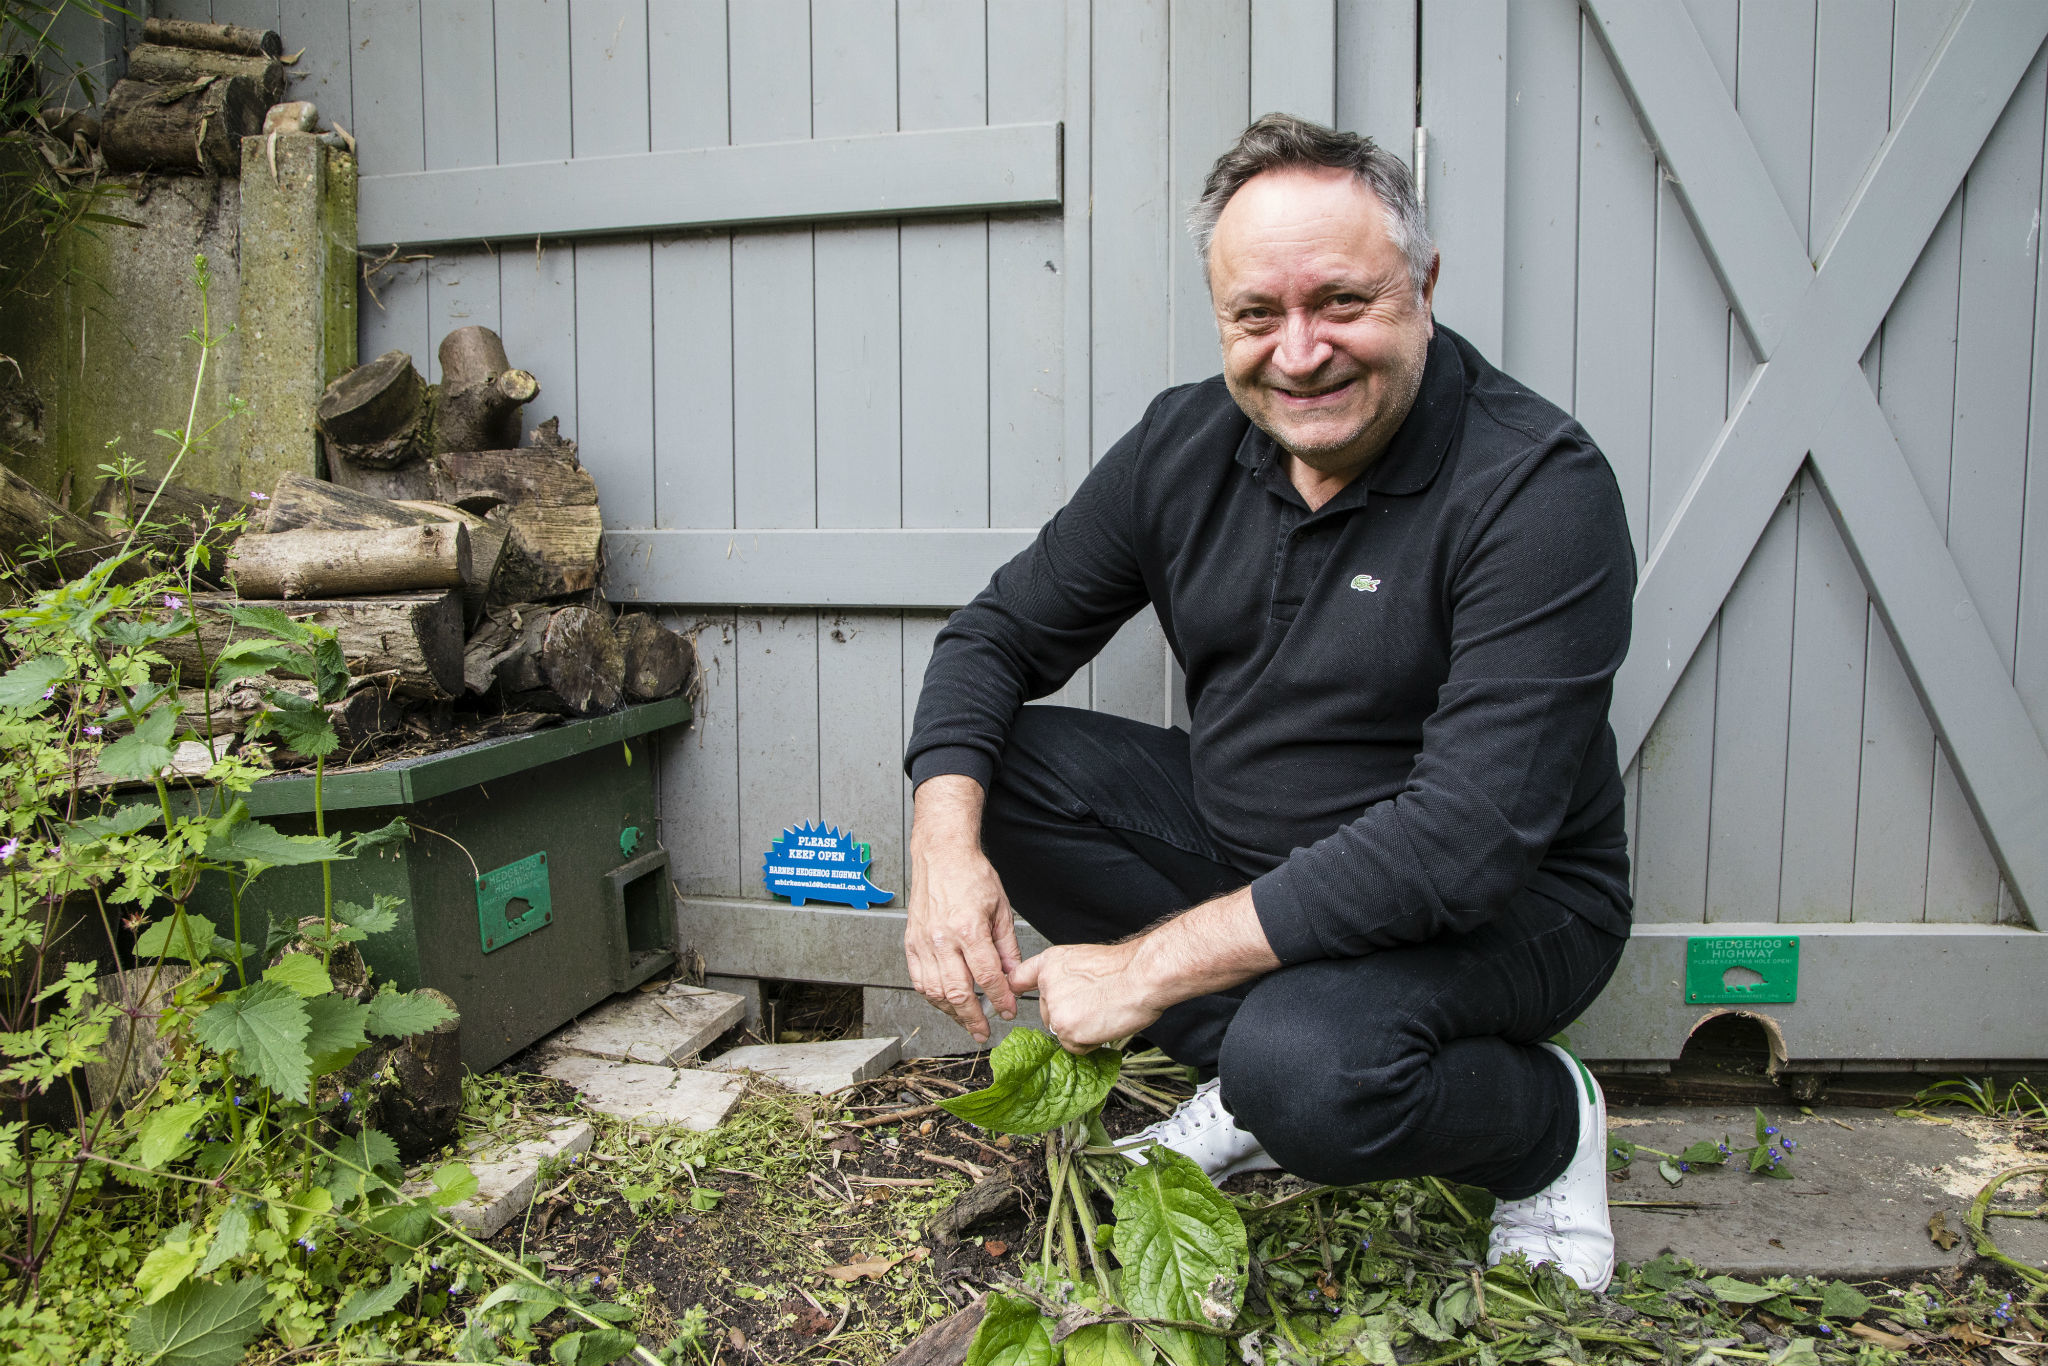 Meet the man saving London's hedgehogs one hole at a time